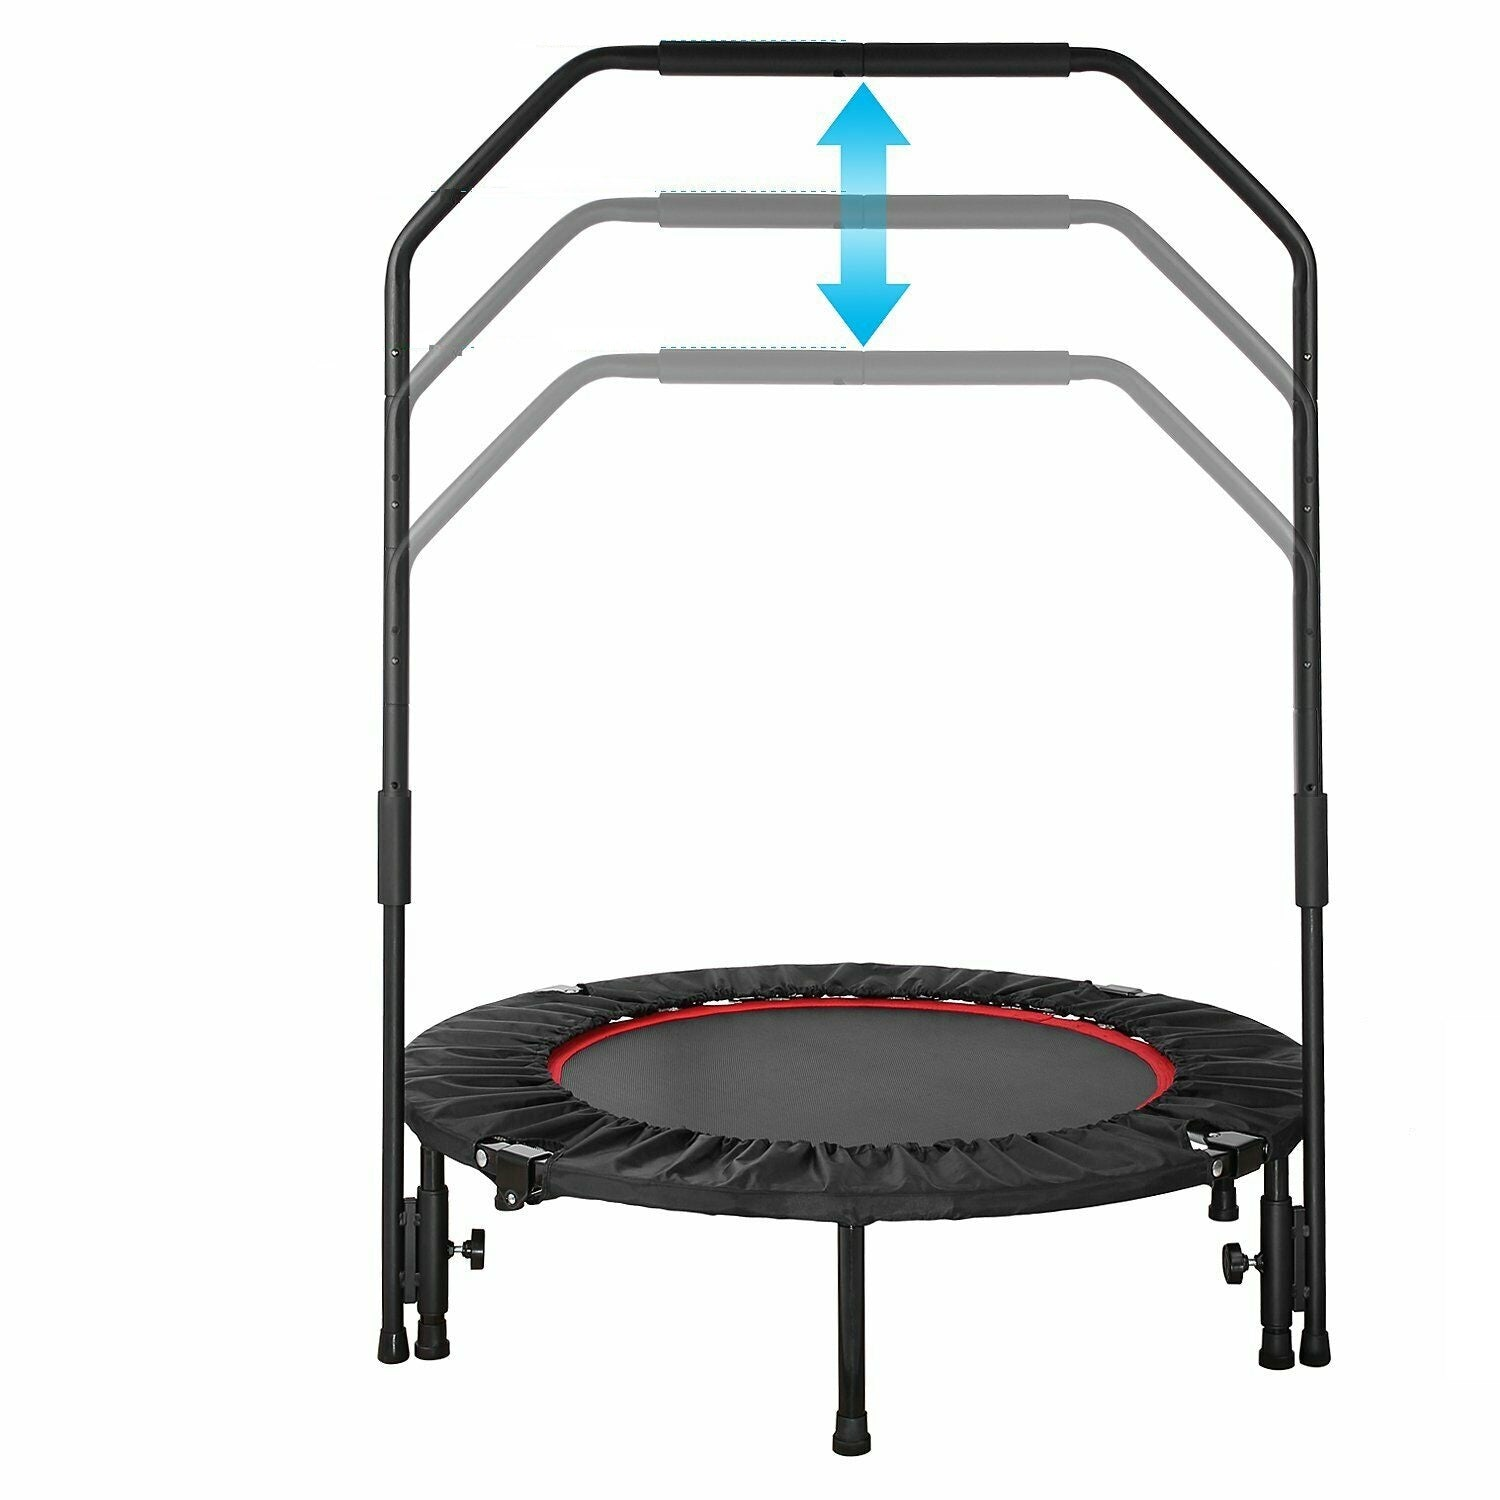 Premium Mini Foldable Trampoline With Bar Urban Rebounder Bouncing Exercise - Morealis